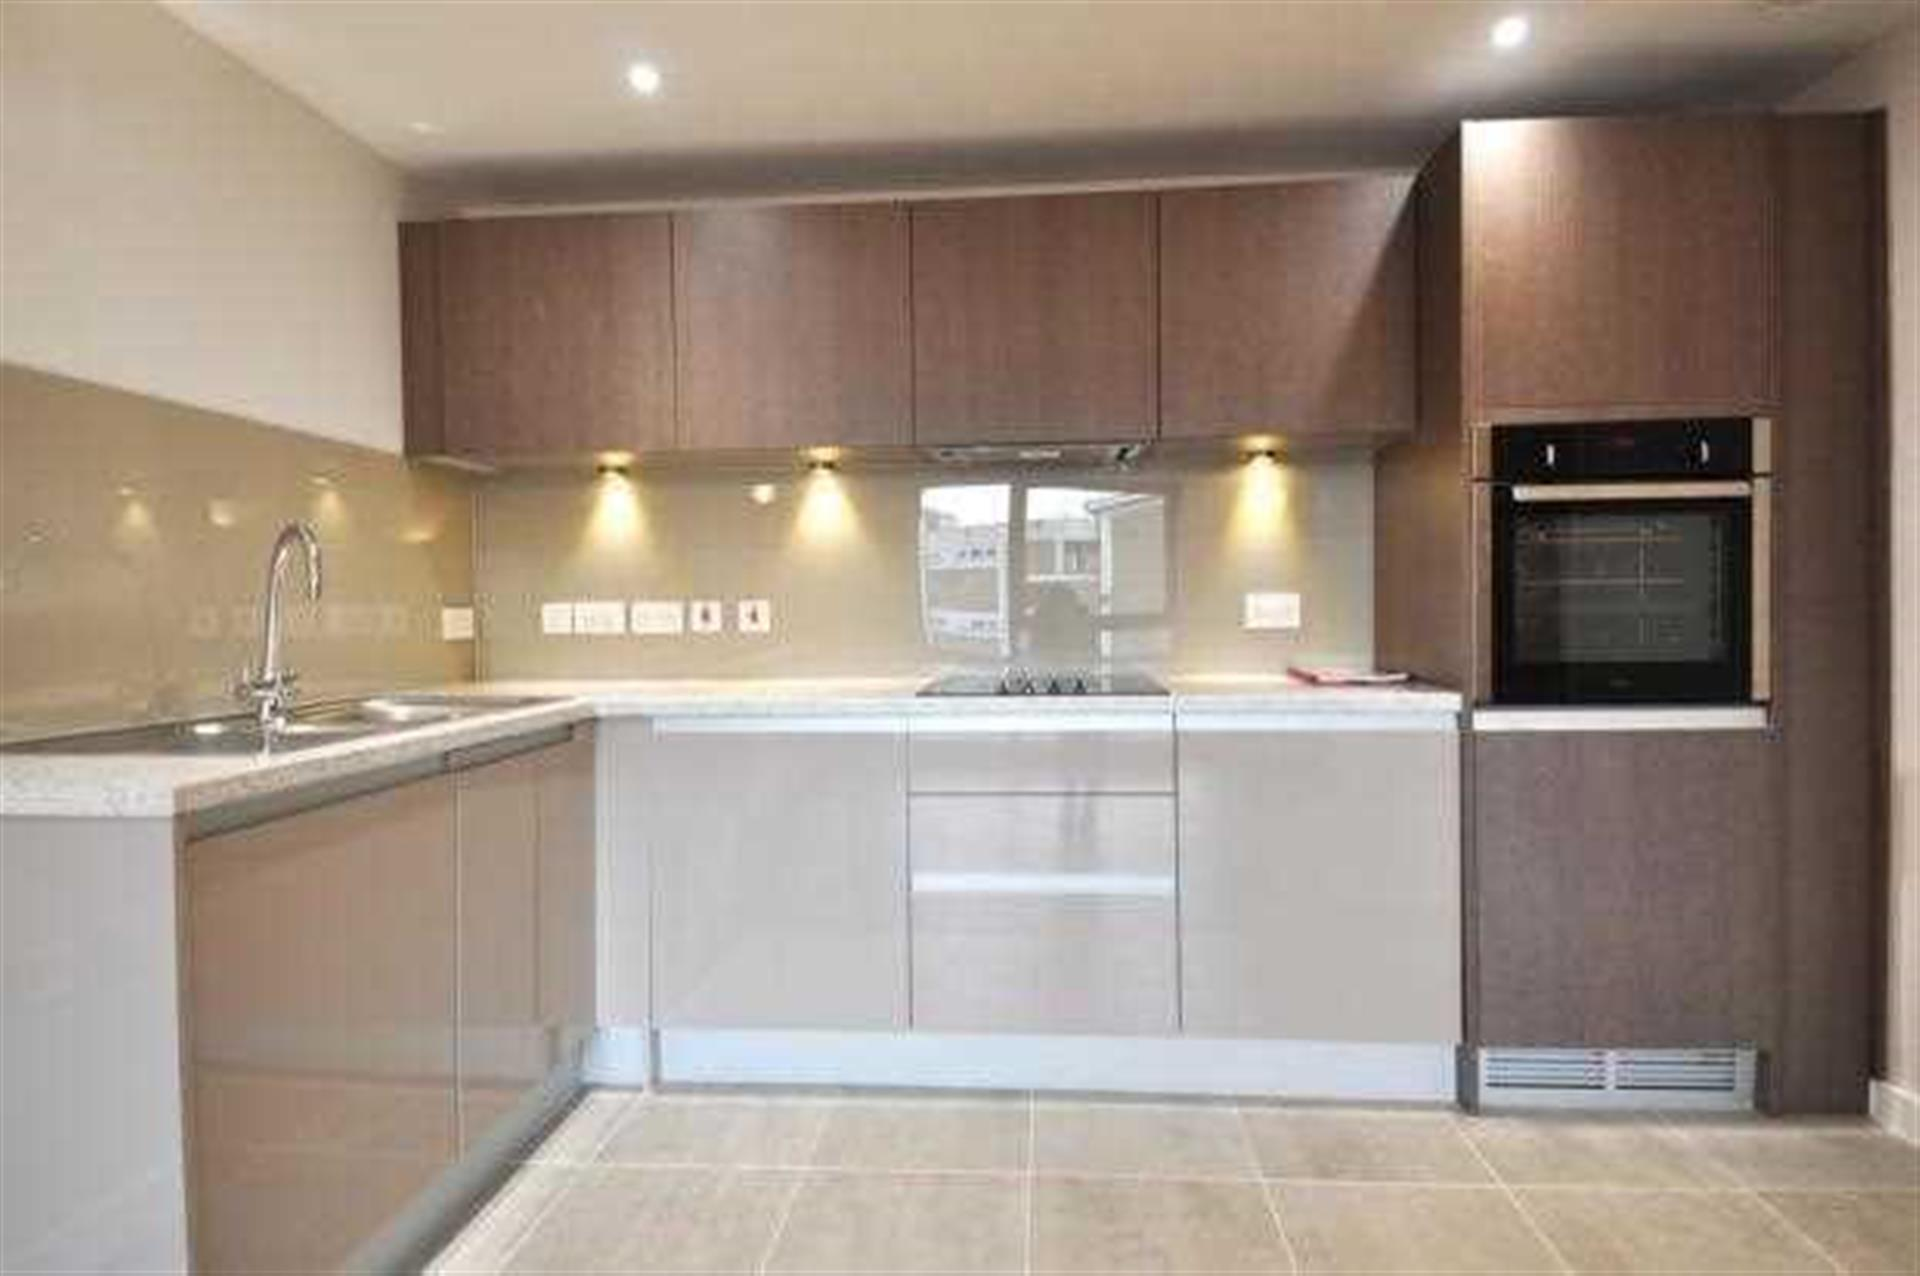 1 Bedroom Apartment Flat / Apartment For Sale - Image 1